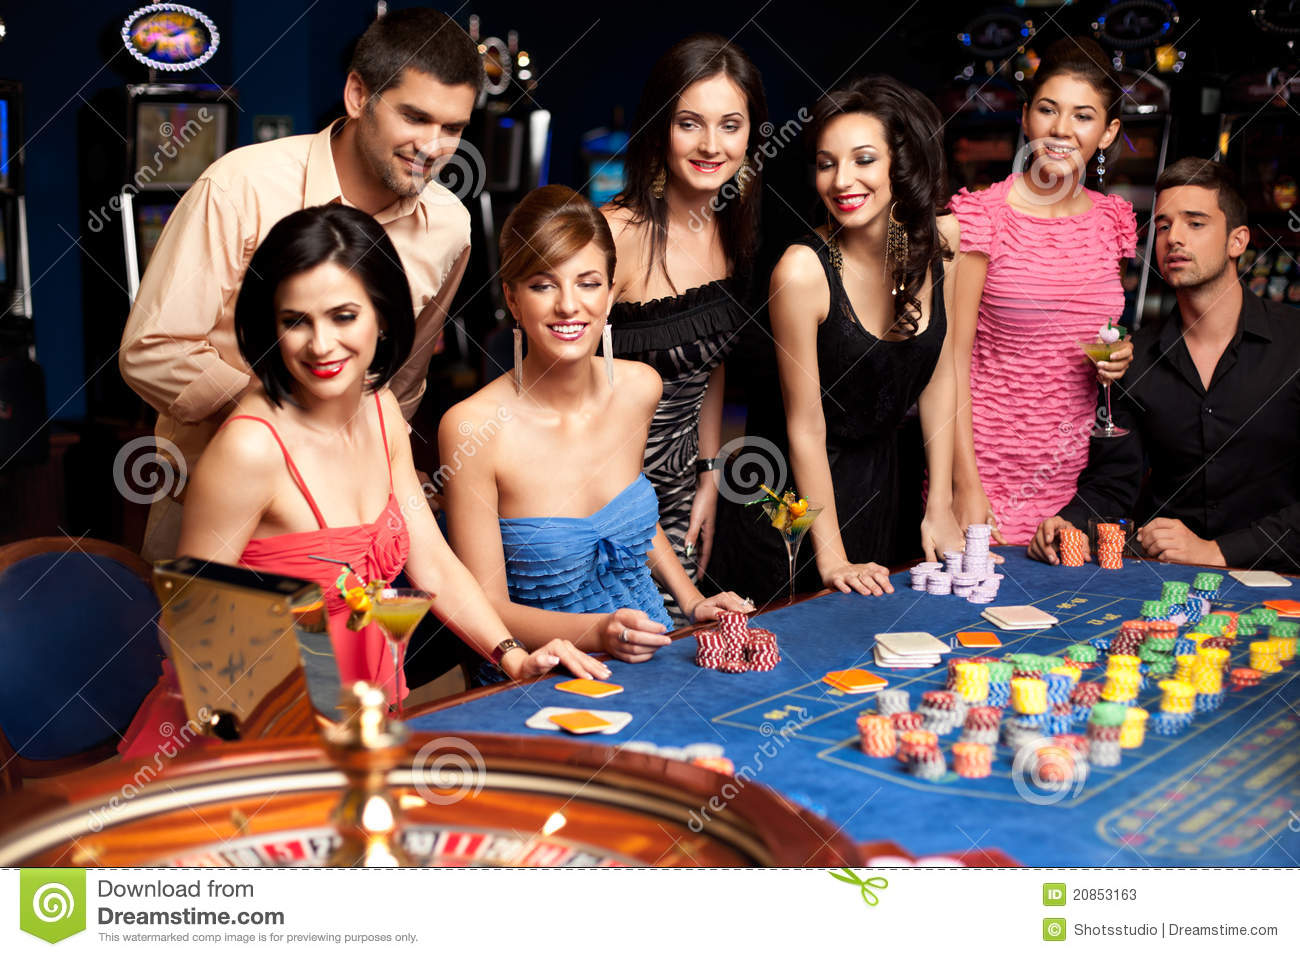 People roulette download